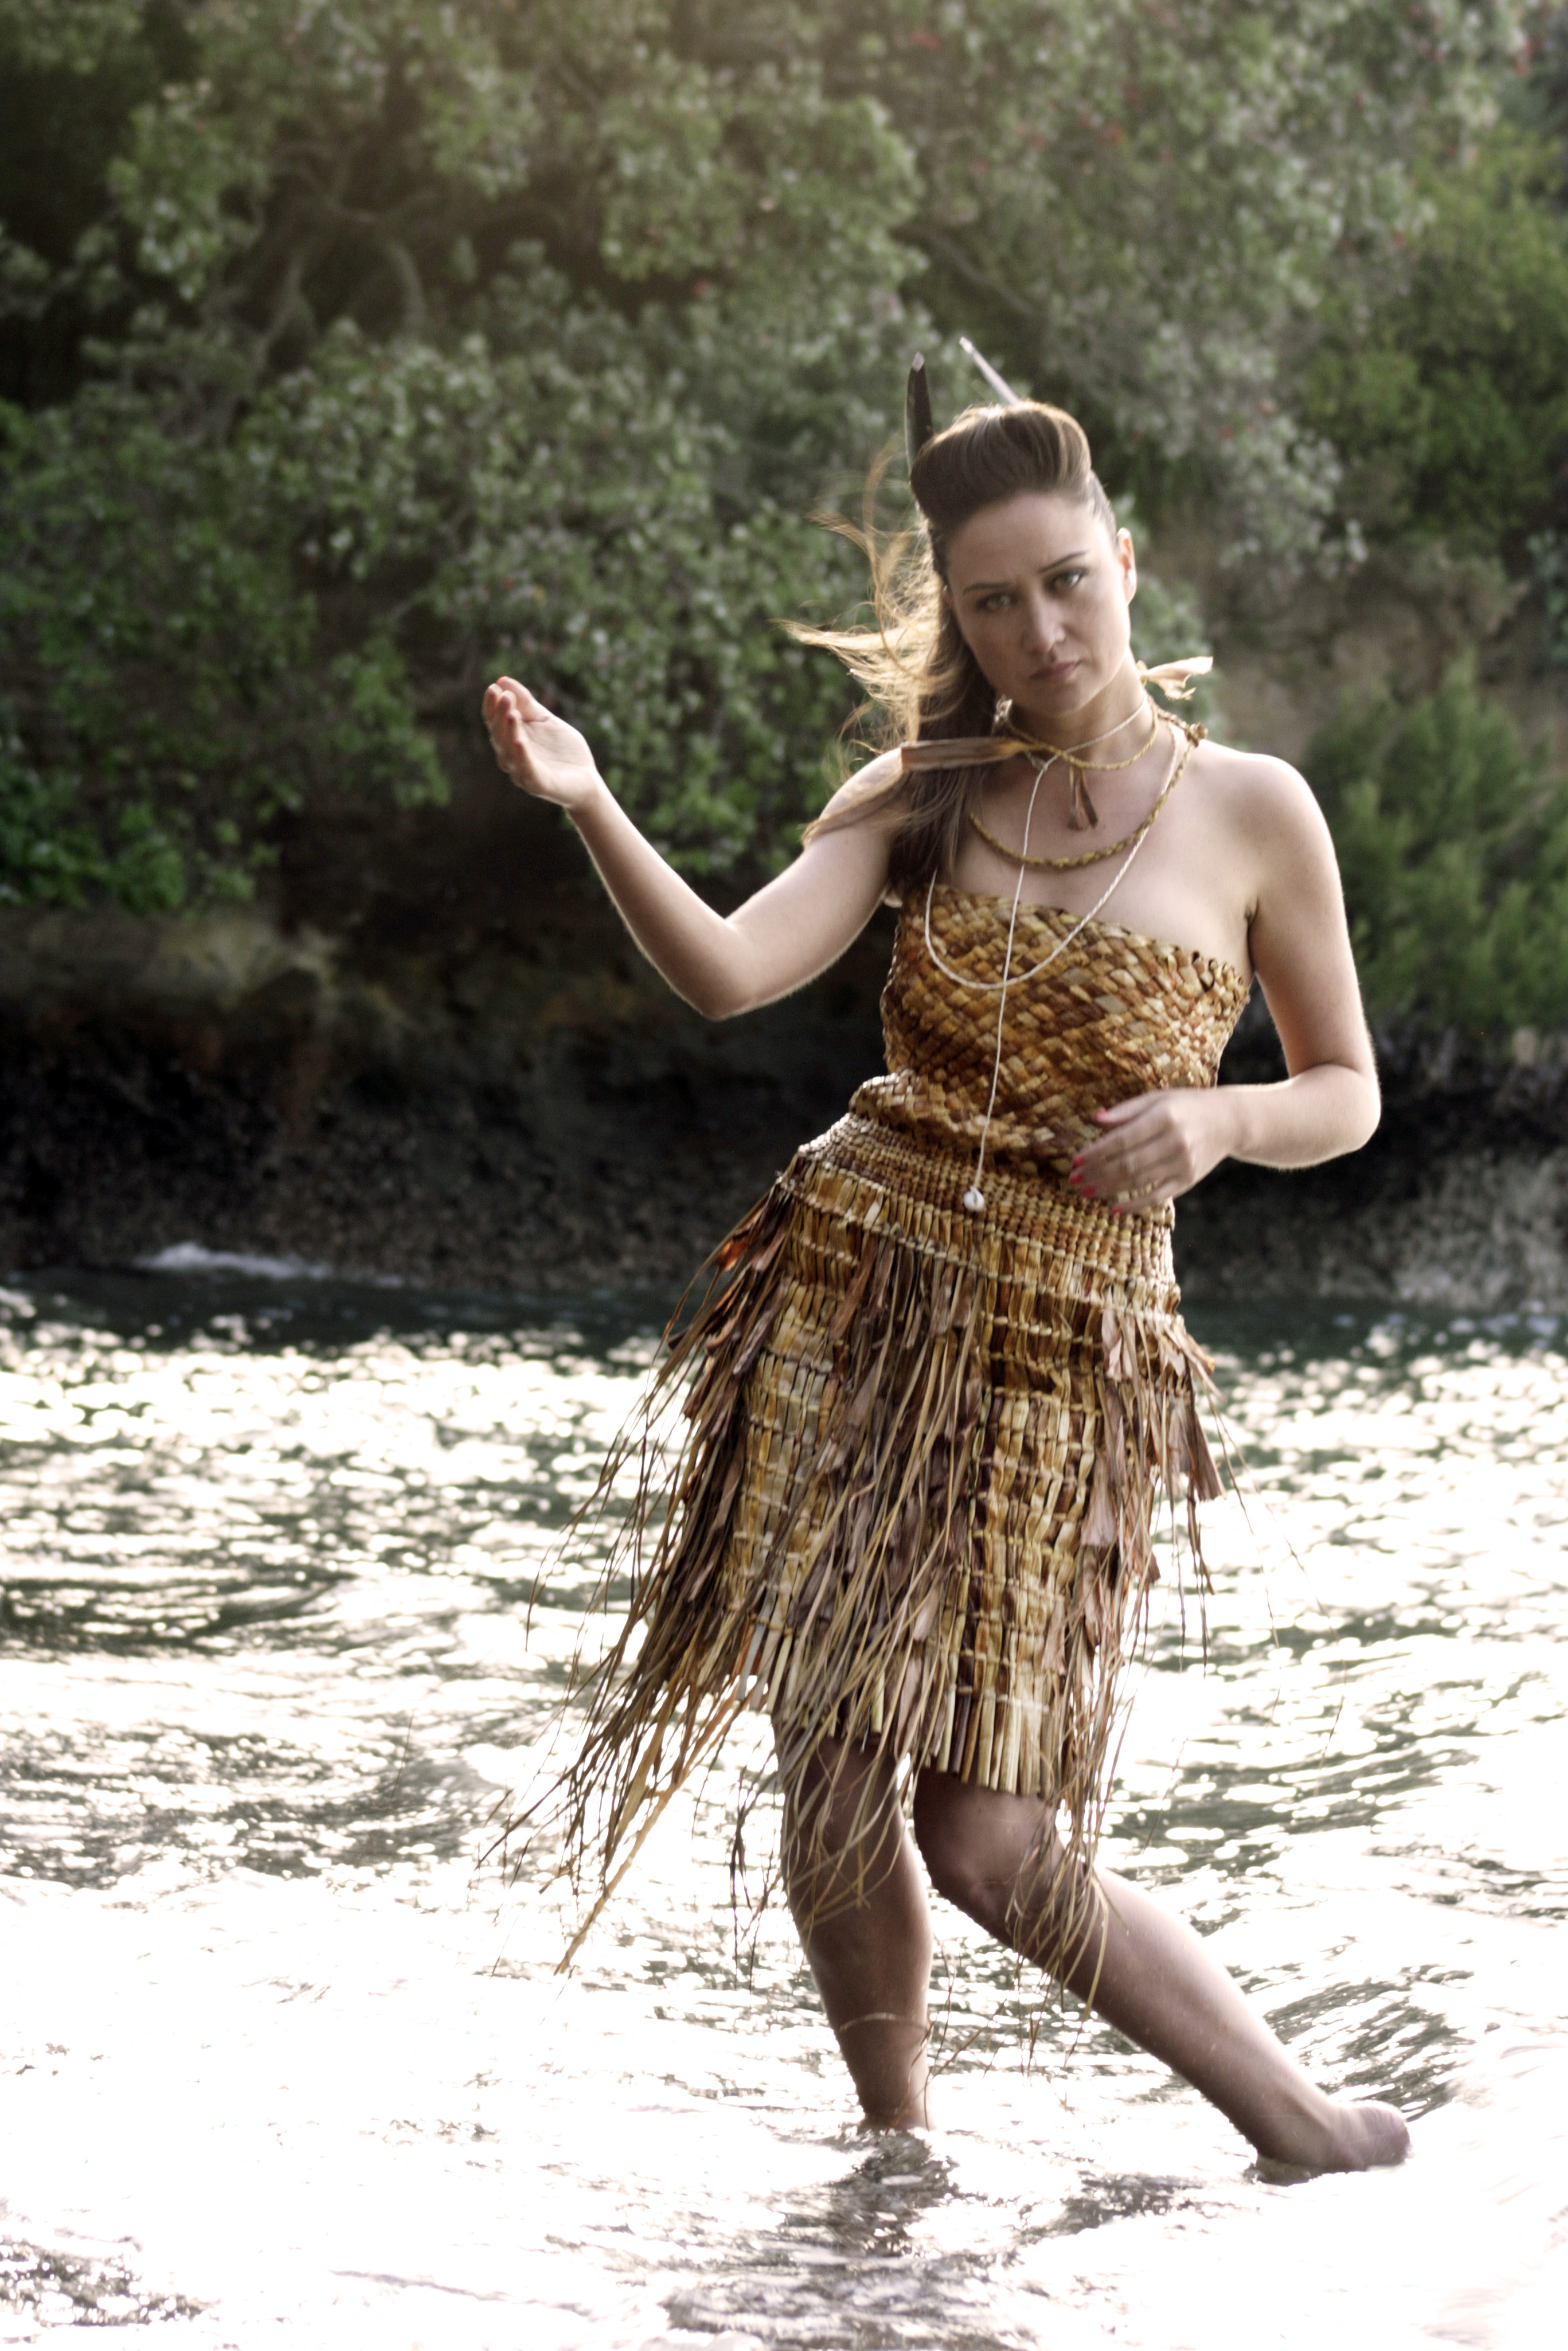 'Raninikura' Kuta and Pingao (sedge grass that grows in the sand dunes) This garment is a woven personification of Raninikura the daughter of our famous tupuna Tohe, and references the transient tribal connections of Te Hiku o te Ika (the Tail of the fish of Maui/ the far north). The materials are sourced from Muriwhenua (another name for the far north), and the golden colour palette of Kuta and Pingao suggests the glistening image of Raninikura that Tohe held in his memories.   Weaving by Bethany Edmunds.